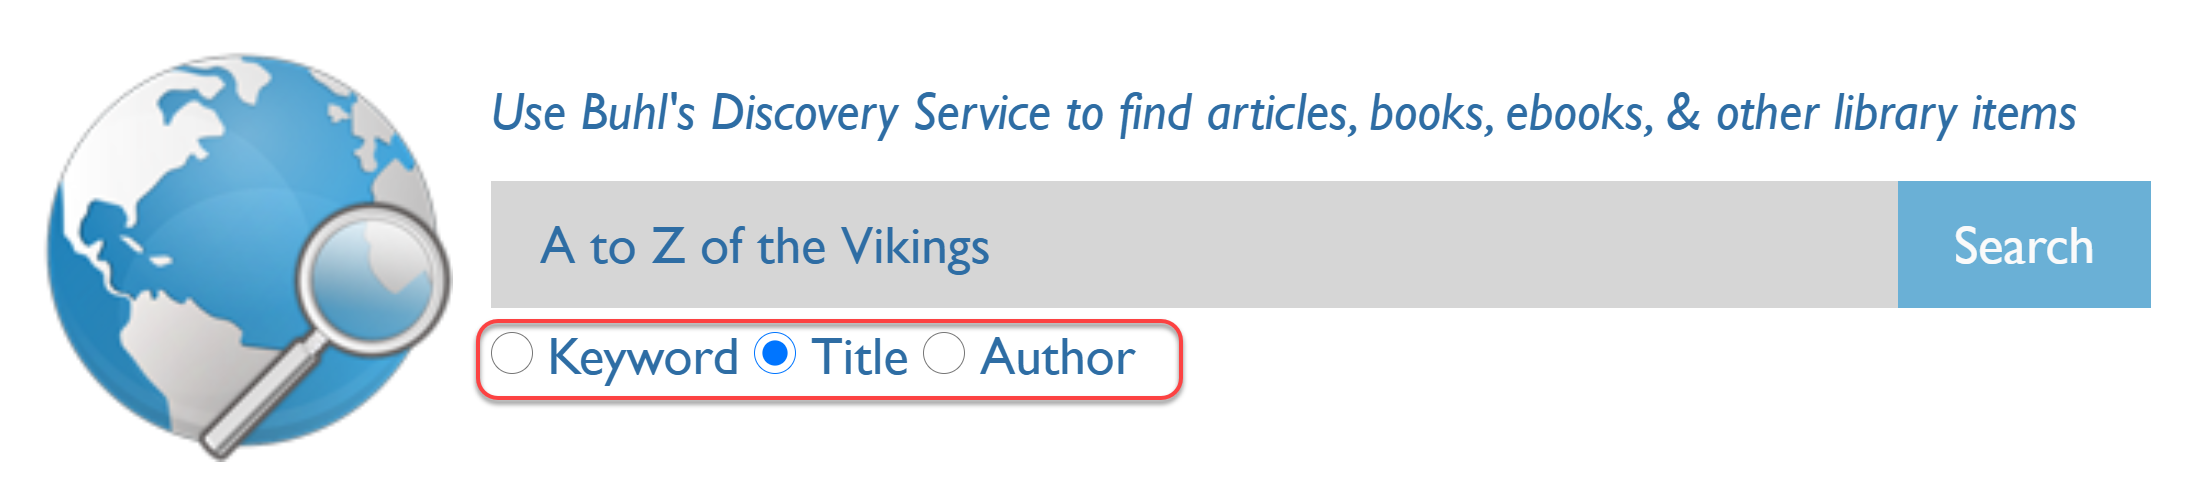 Discovery search for A to Z of the Vikings, using the title bullet limiter.